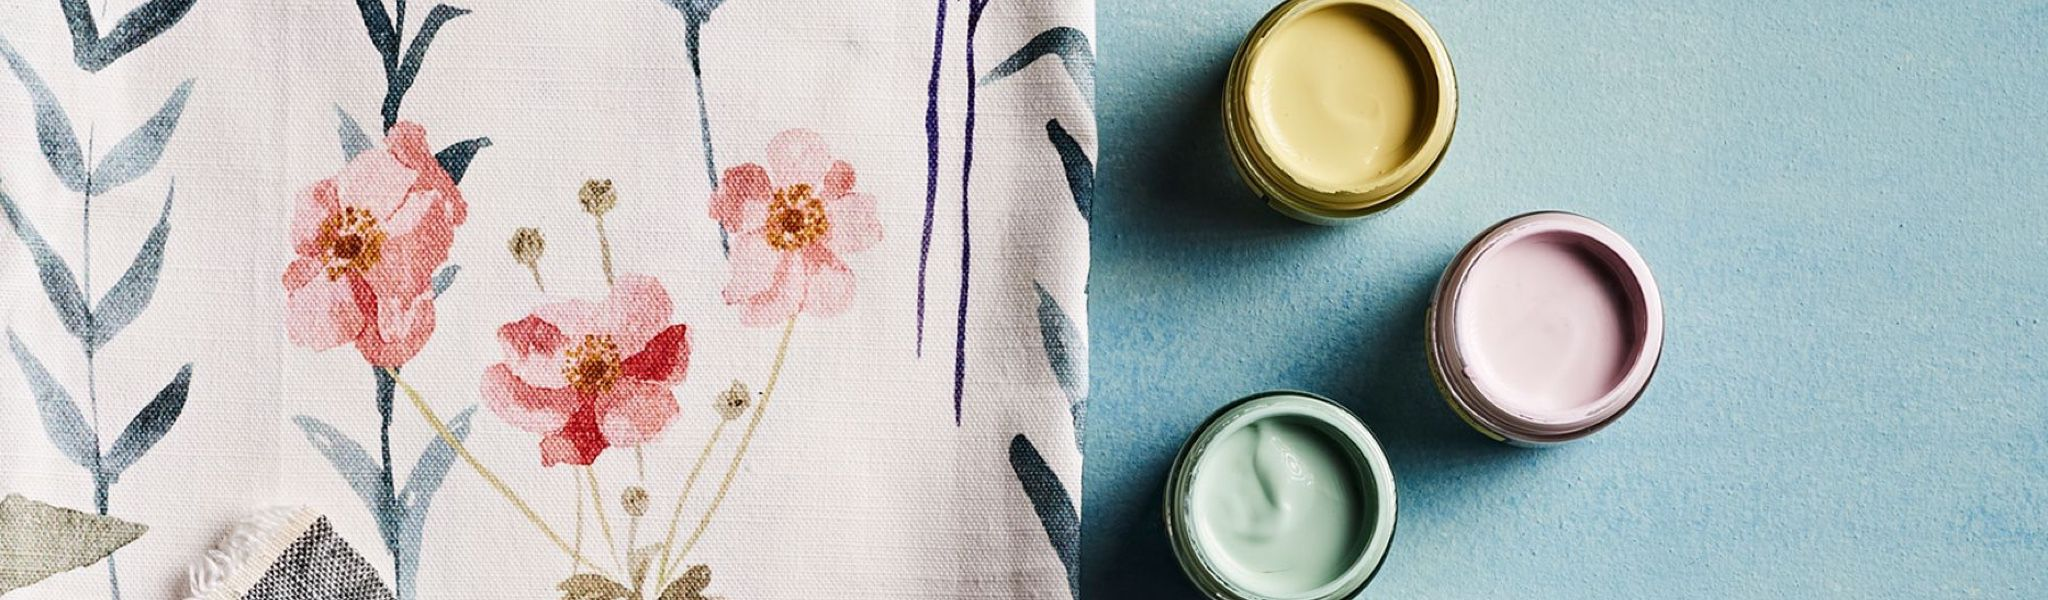 Paint & Wallpaper: How to decorate your home